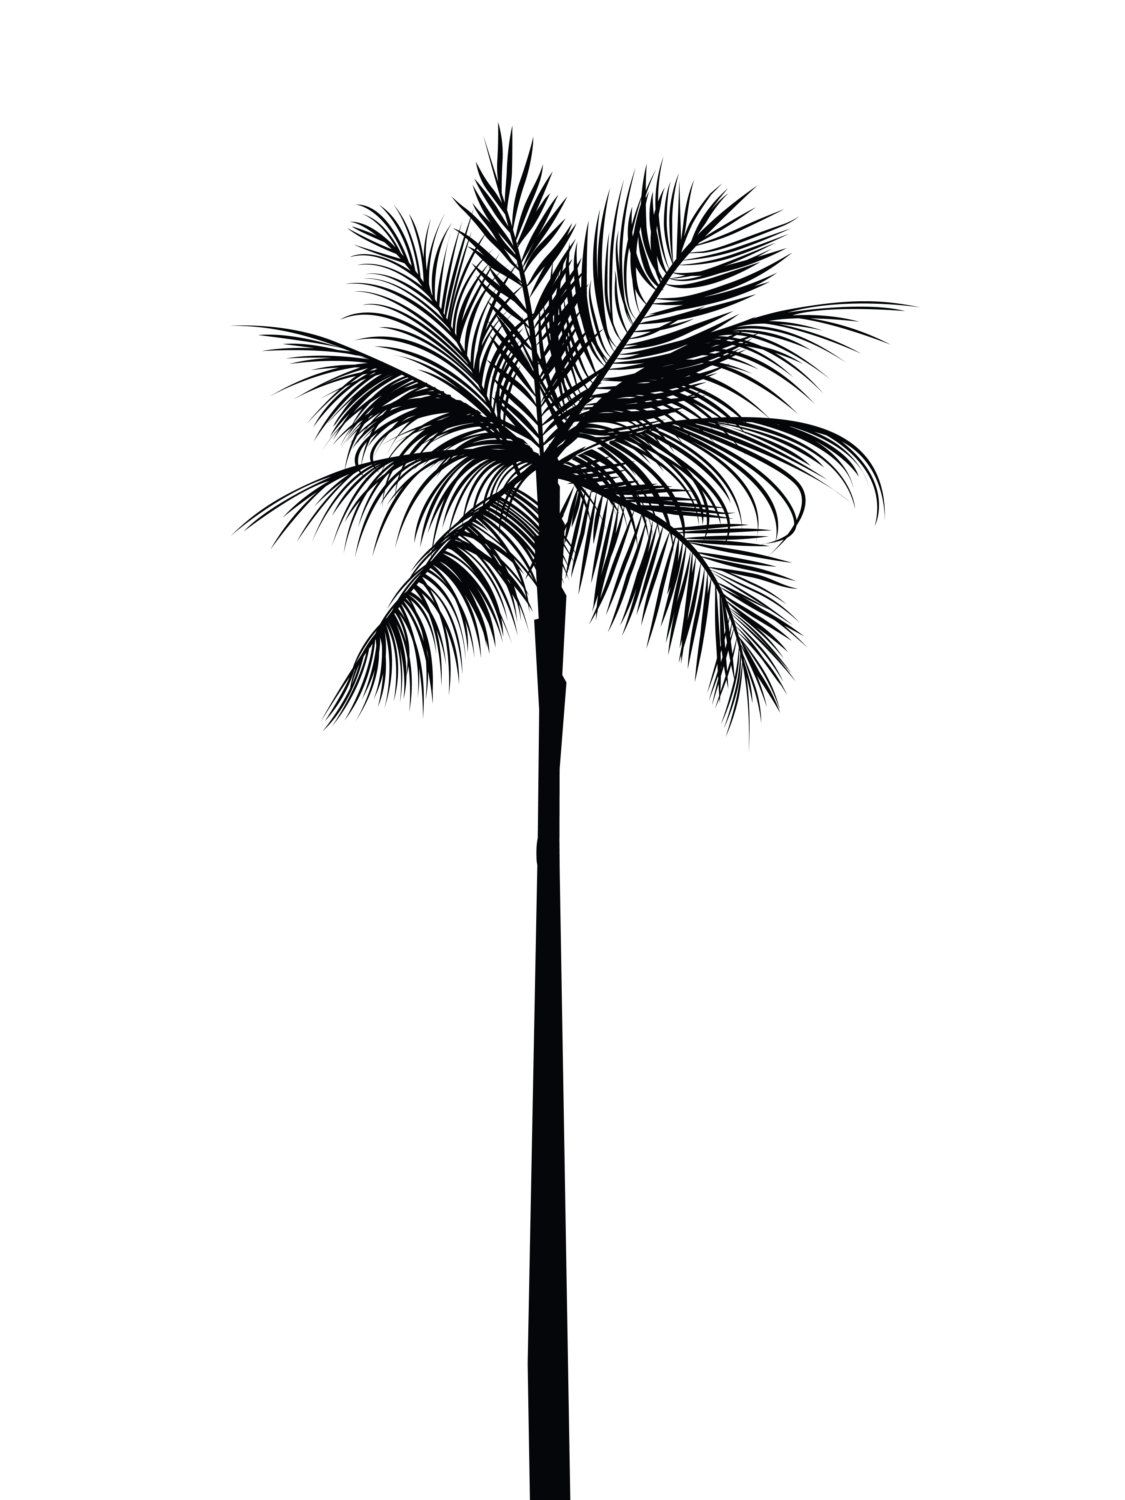 25+ Tree Drawings, Art Ideas | Design Trends - Premium PSD ...